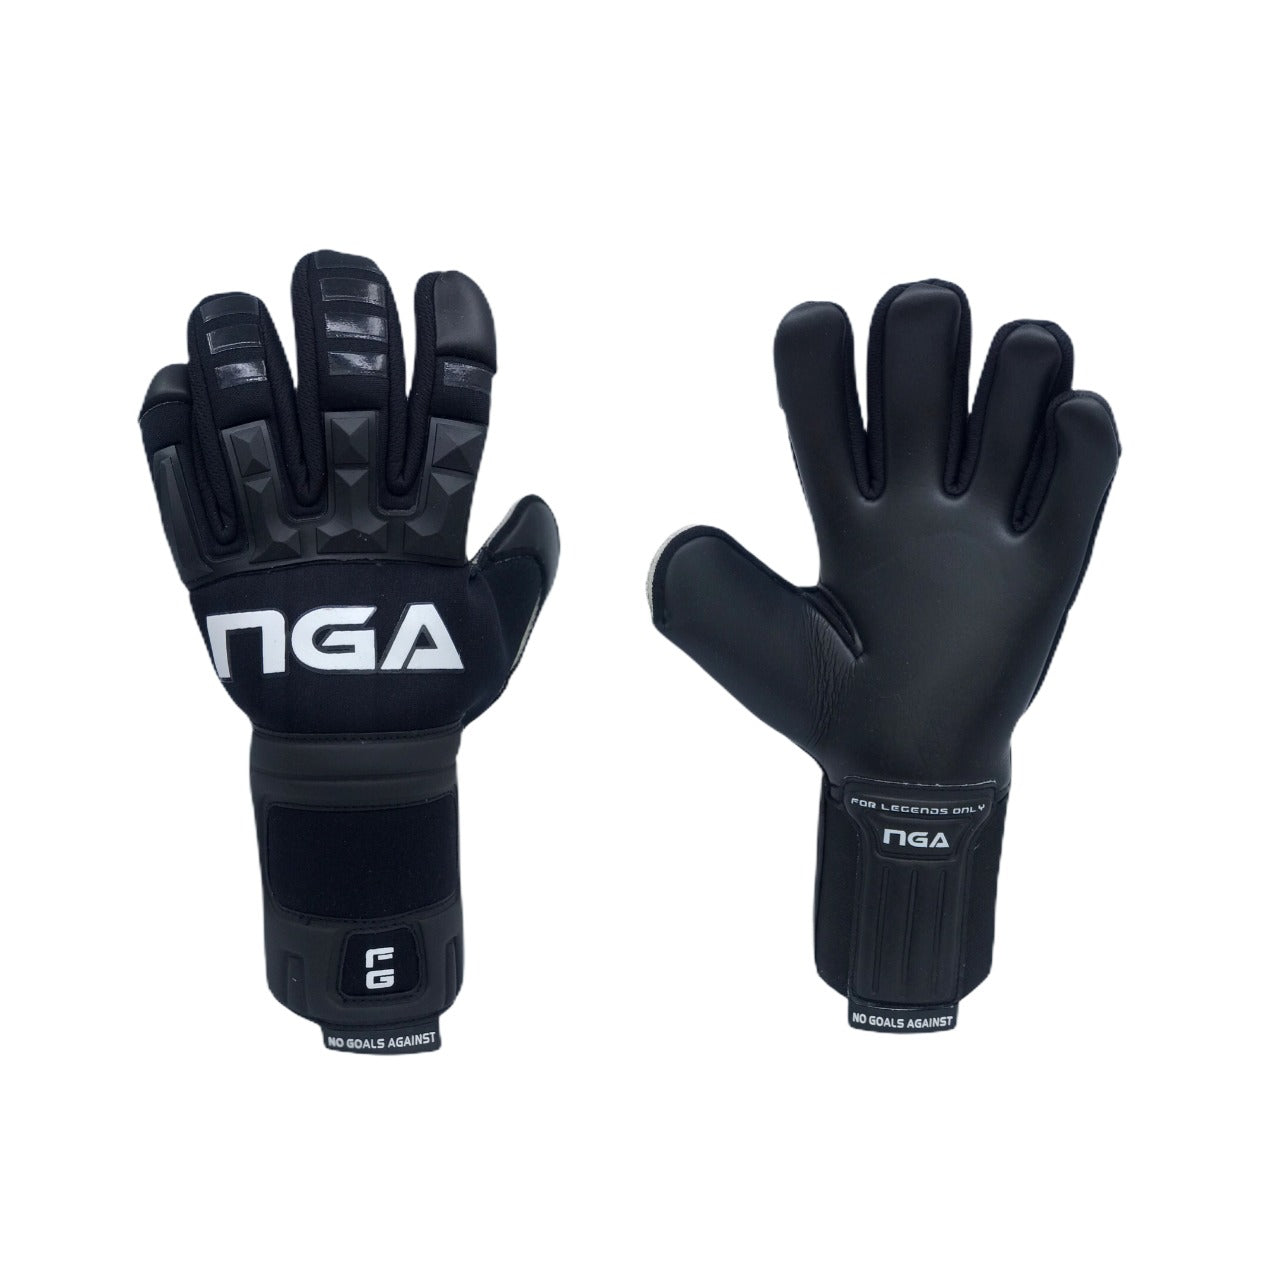 NGA 2020 Legends Blackout Goalkeeper Glove